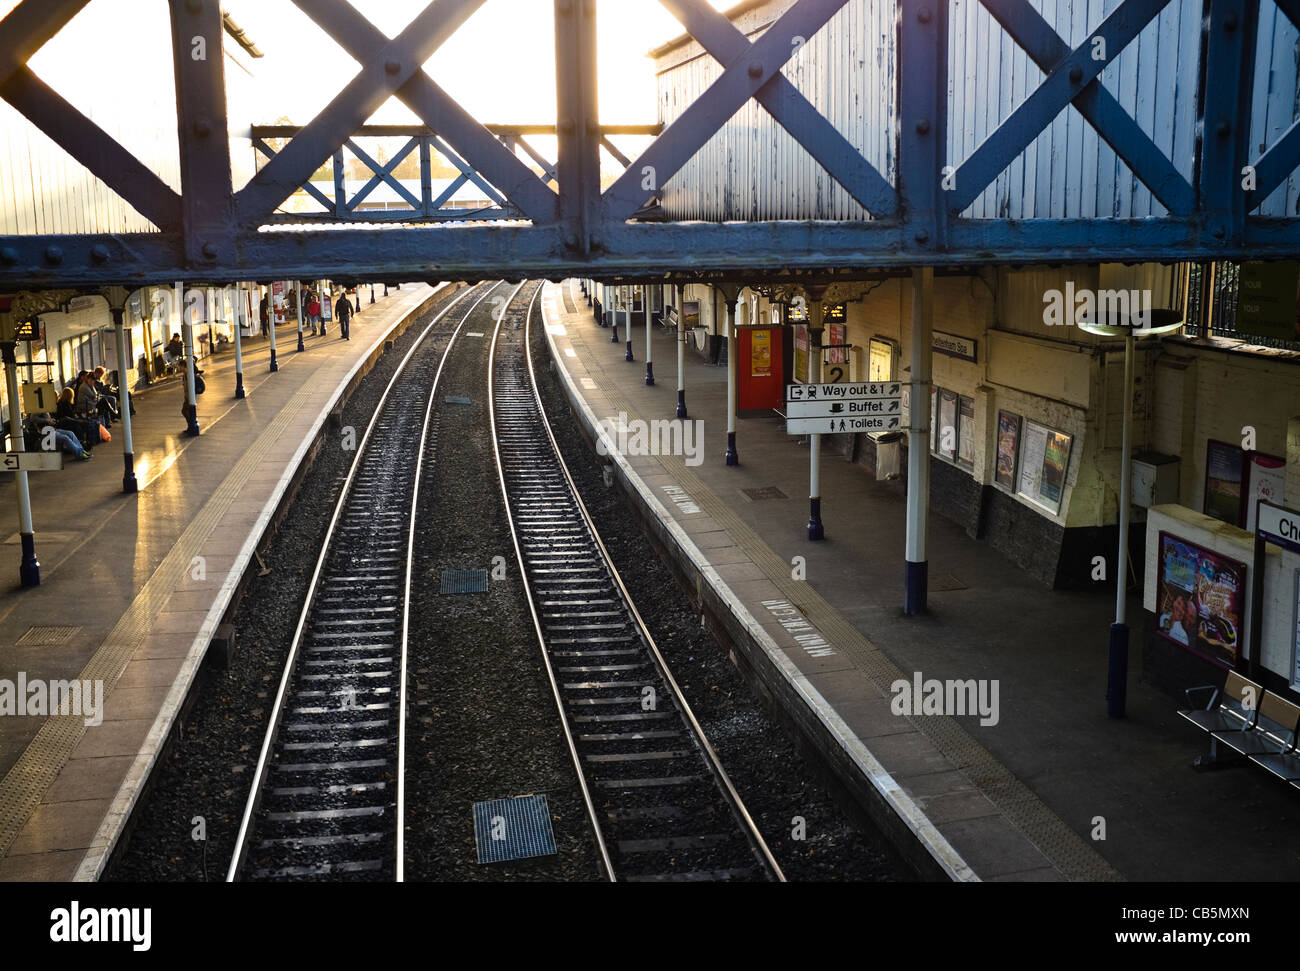 End of the day - low sunlight highlighting the tracks of a railway station. UK. - Stock Image